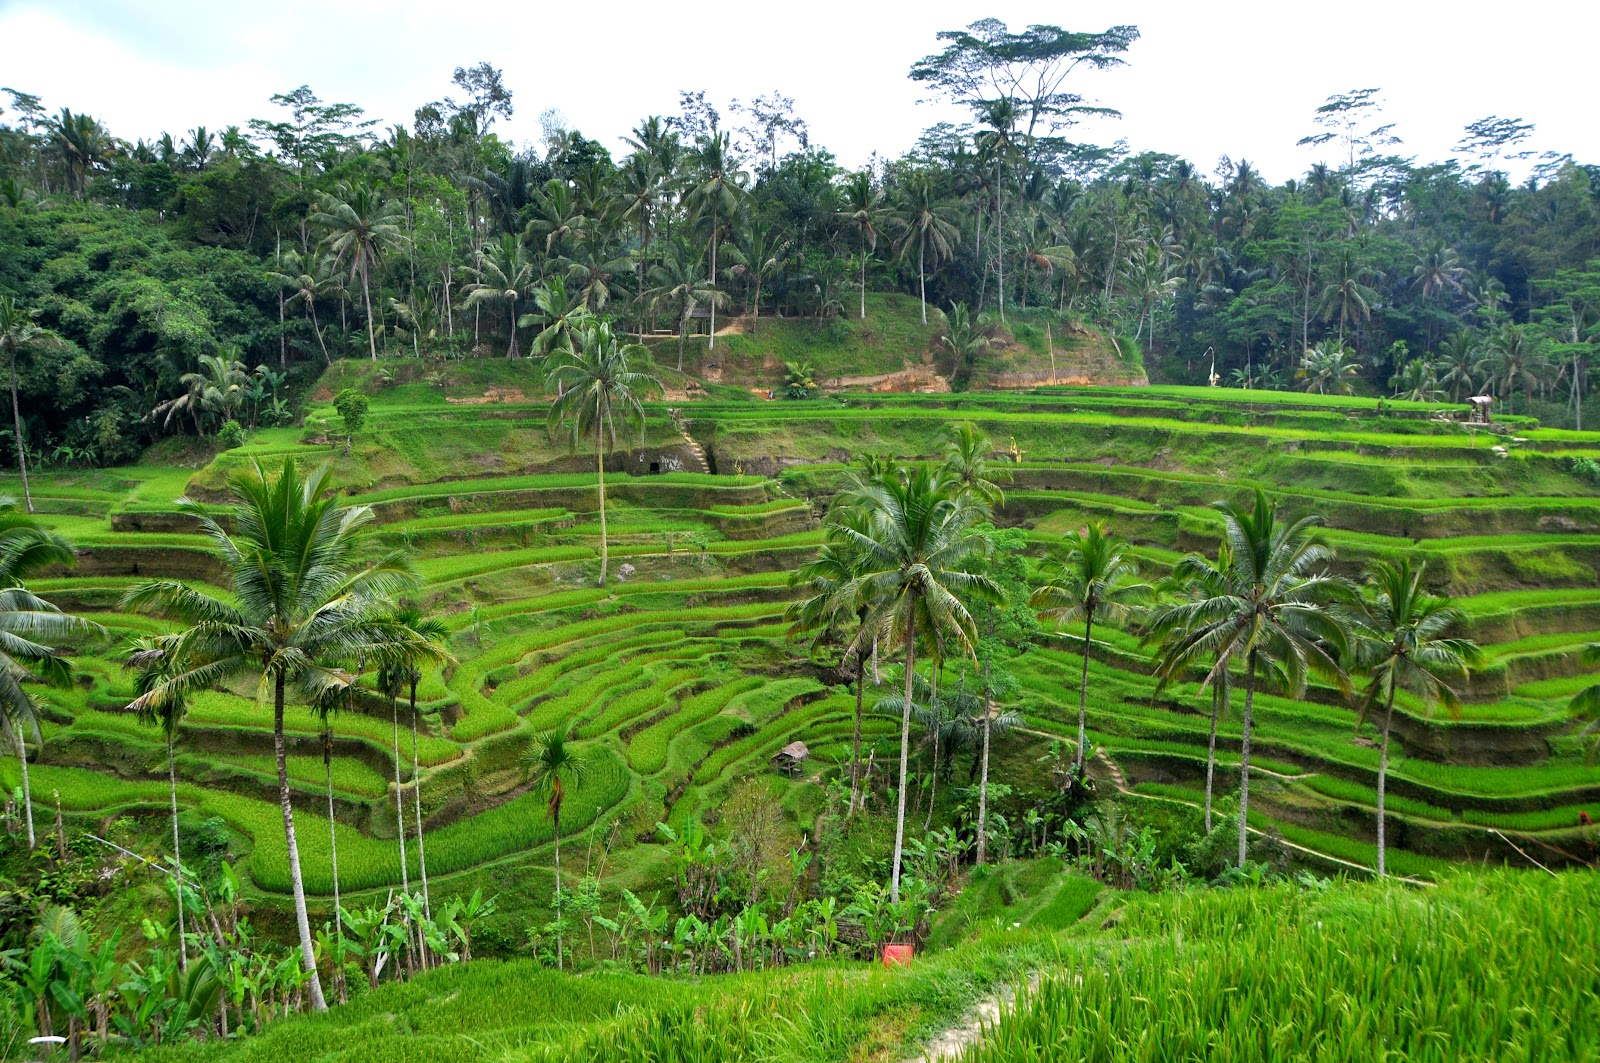 tegalalang green rice terraces on cloudy day surrounded by plam trees and jungle bali indonesia